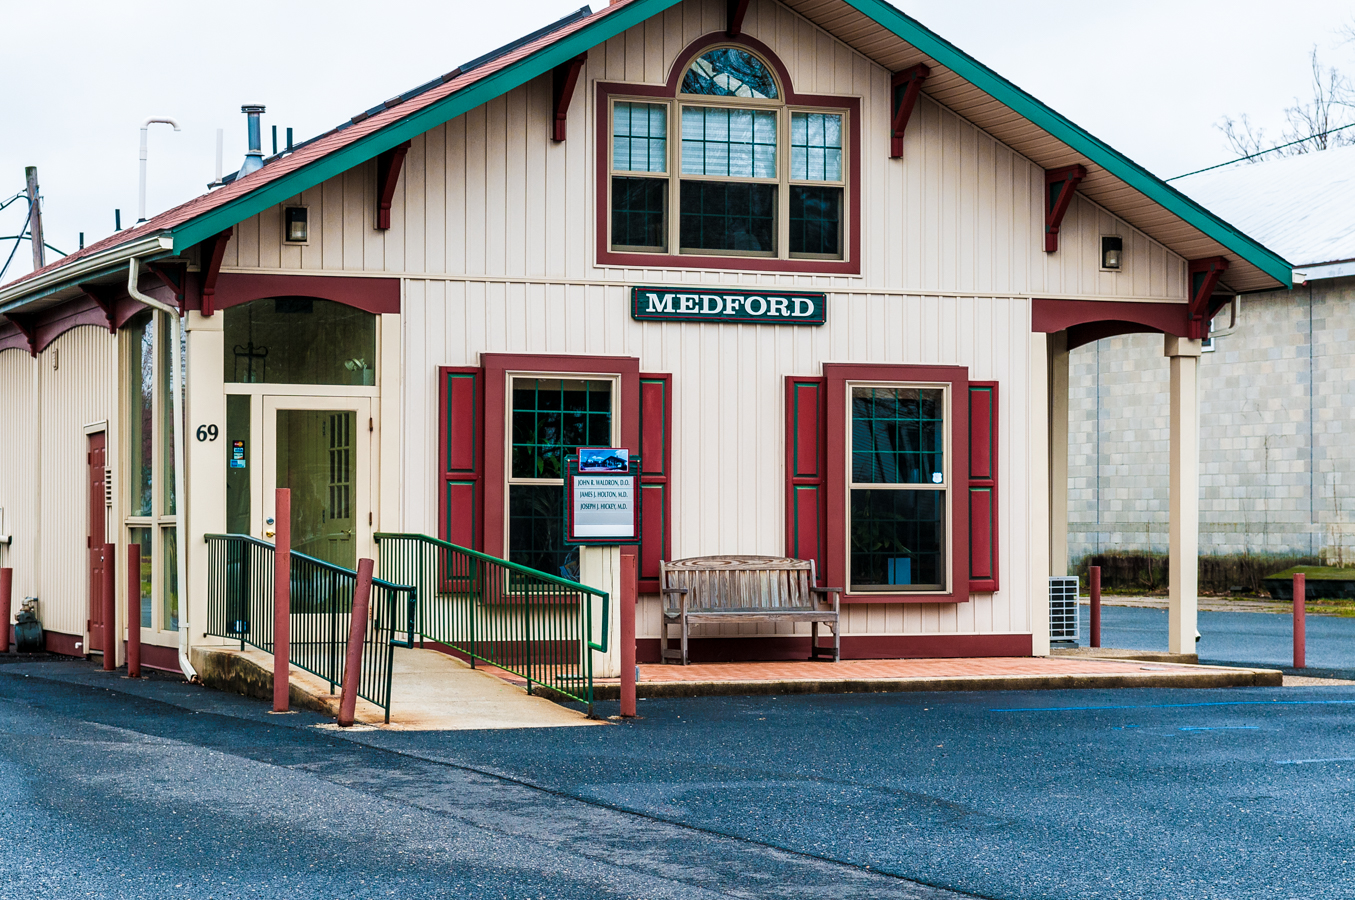 medford-train-station-7786